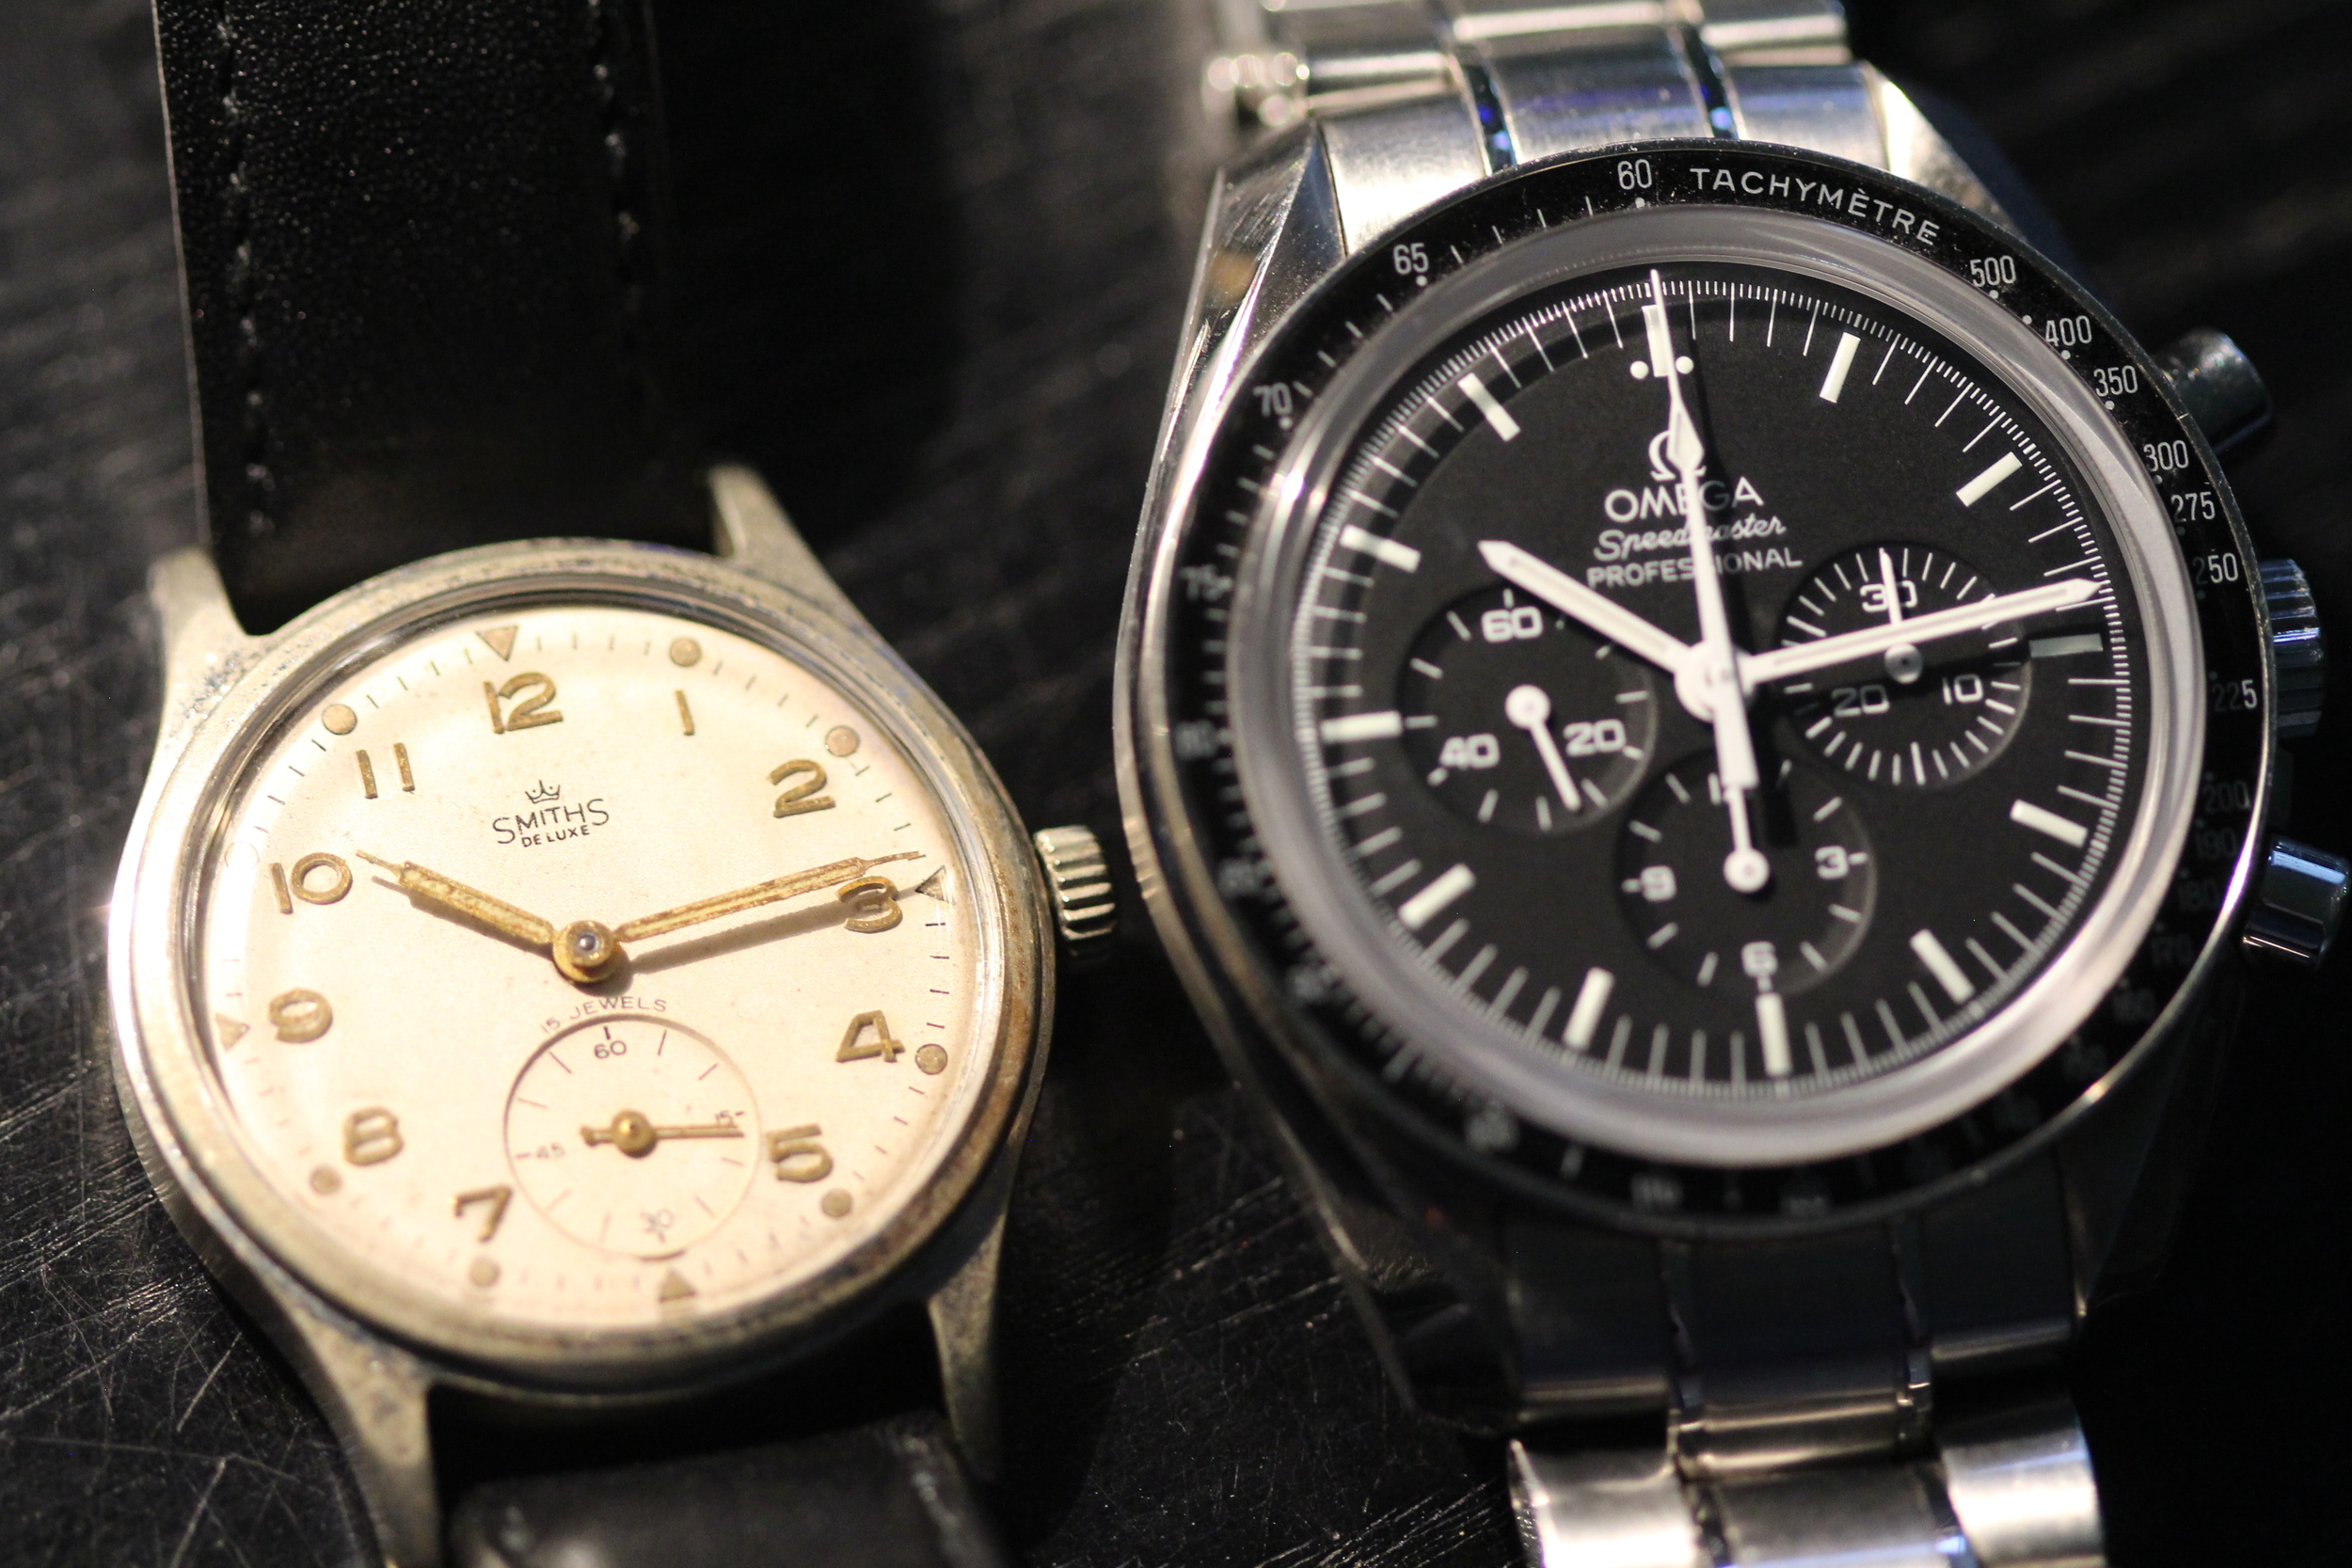 Everest Watch and  Moon Watch